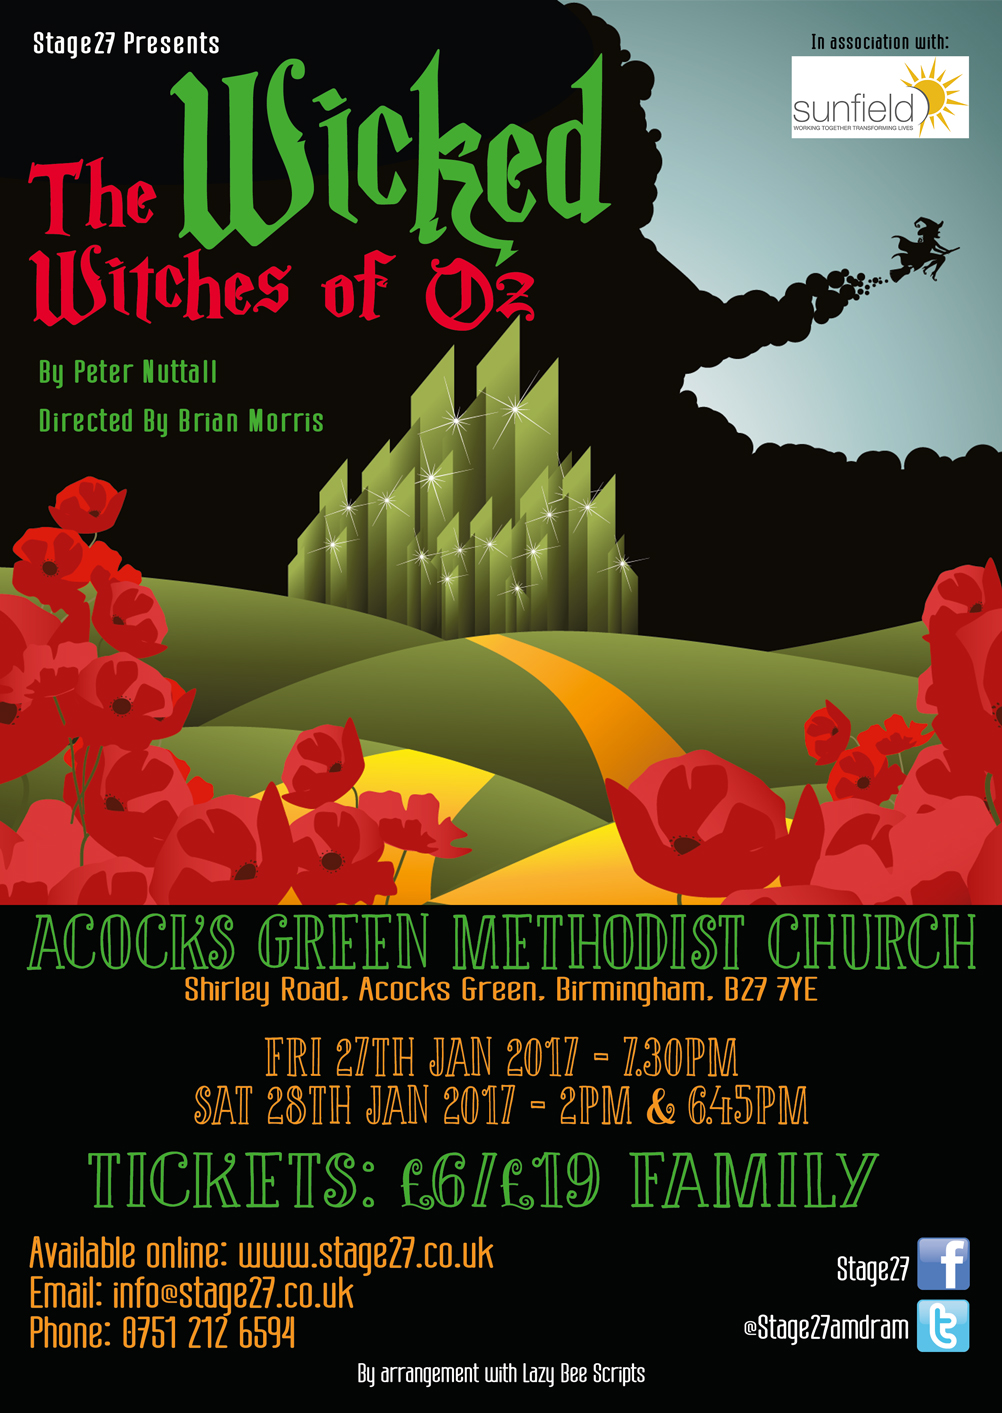 The Wicked Witches of Oz